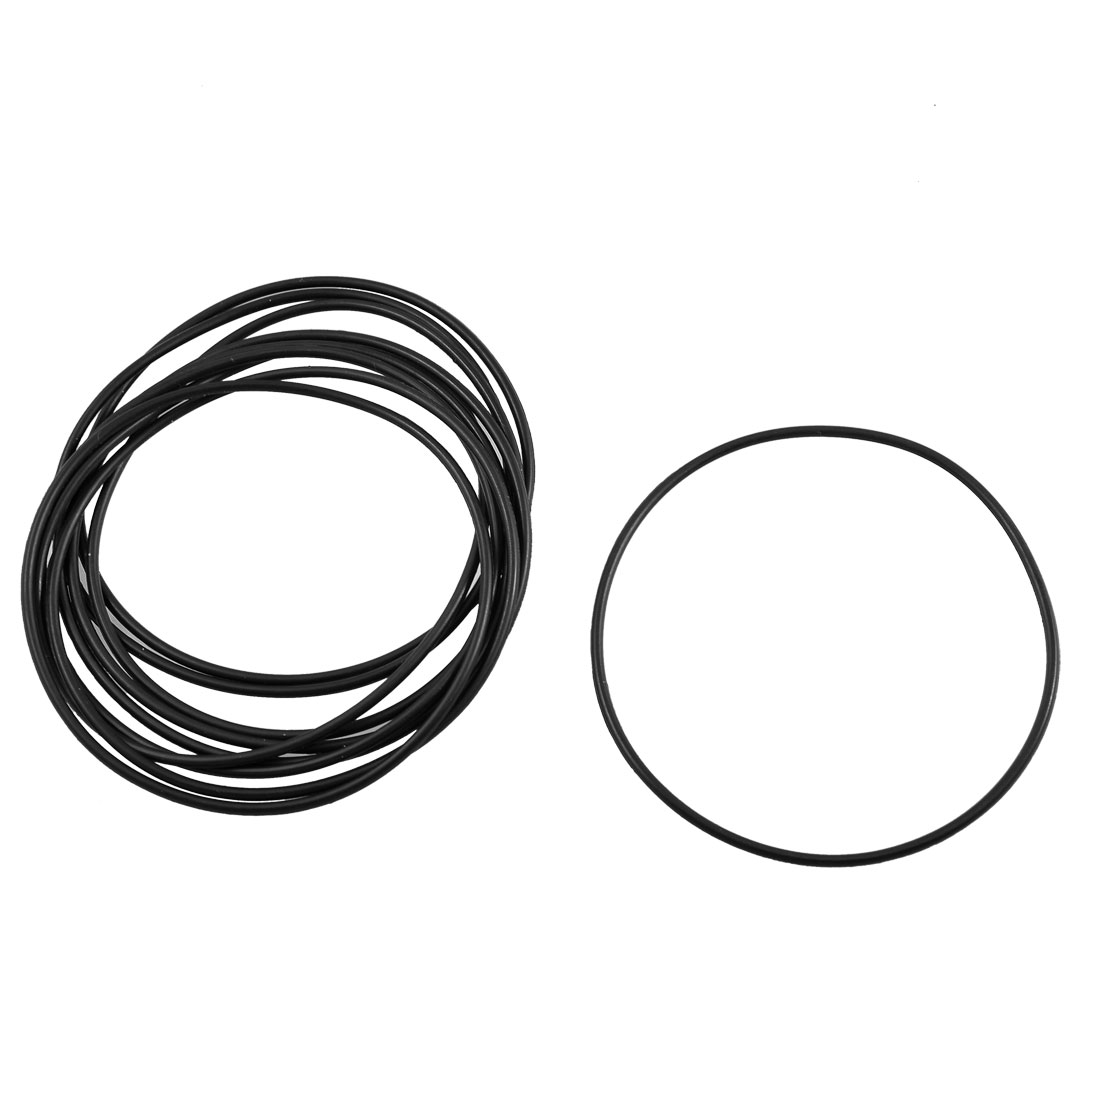 10 Pcs Black Rubber O Shaped Ring Oil Sealing Gaskets 63mm x 1.8mm